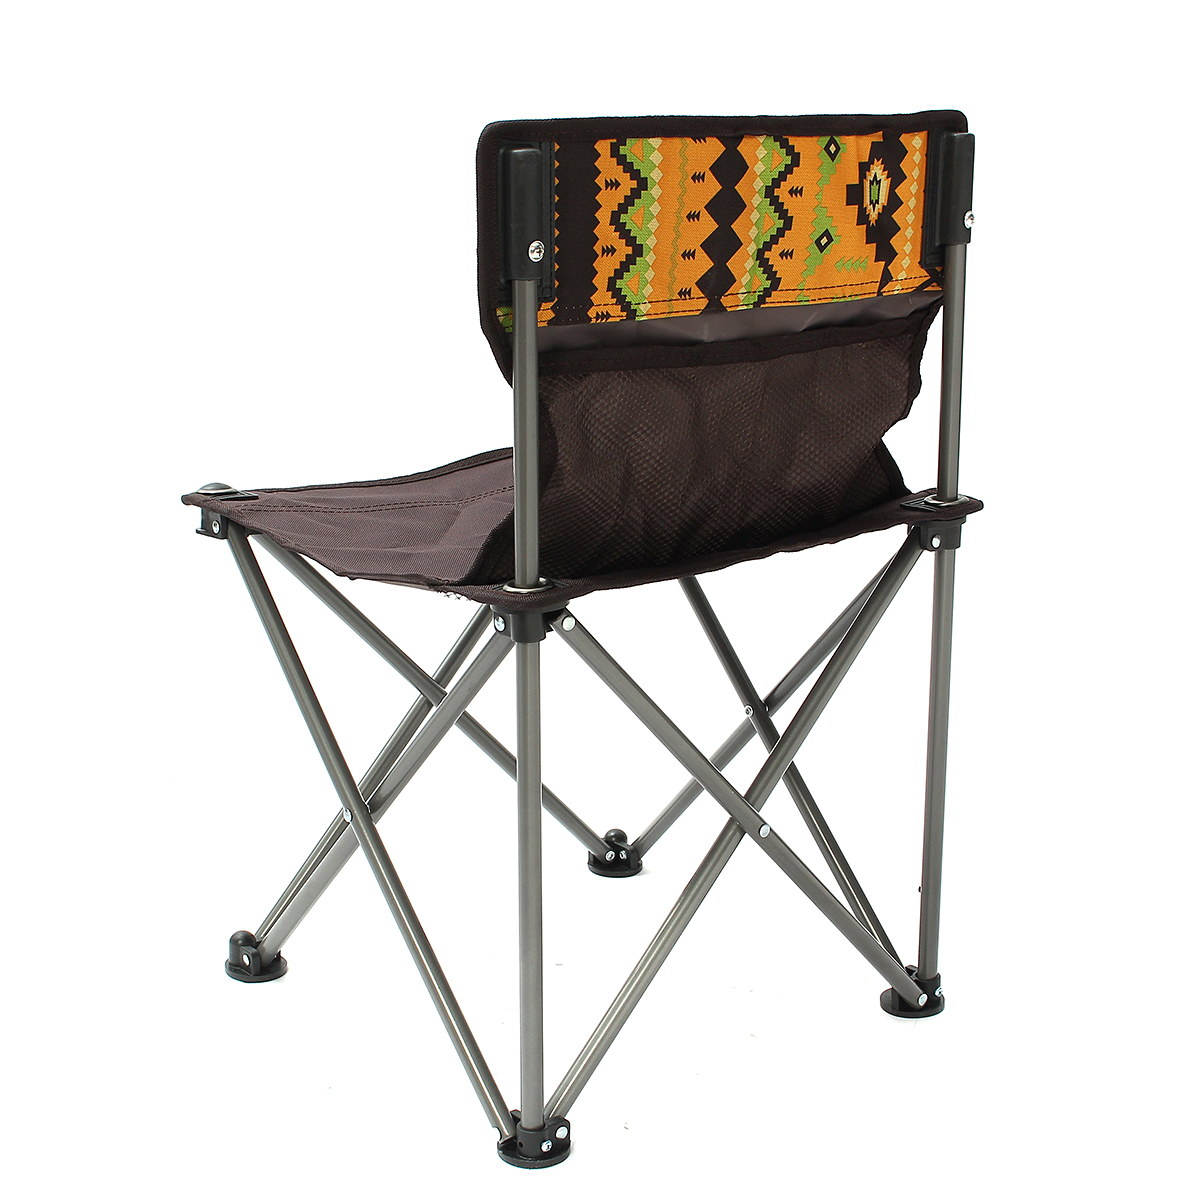 portable picnic chair stand for sale camping toilets and showers outdoor garden